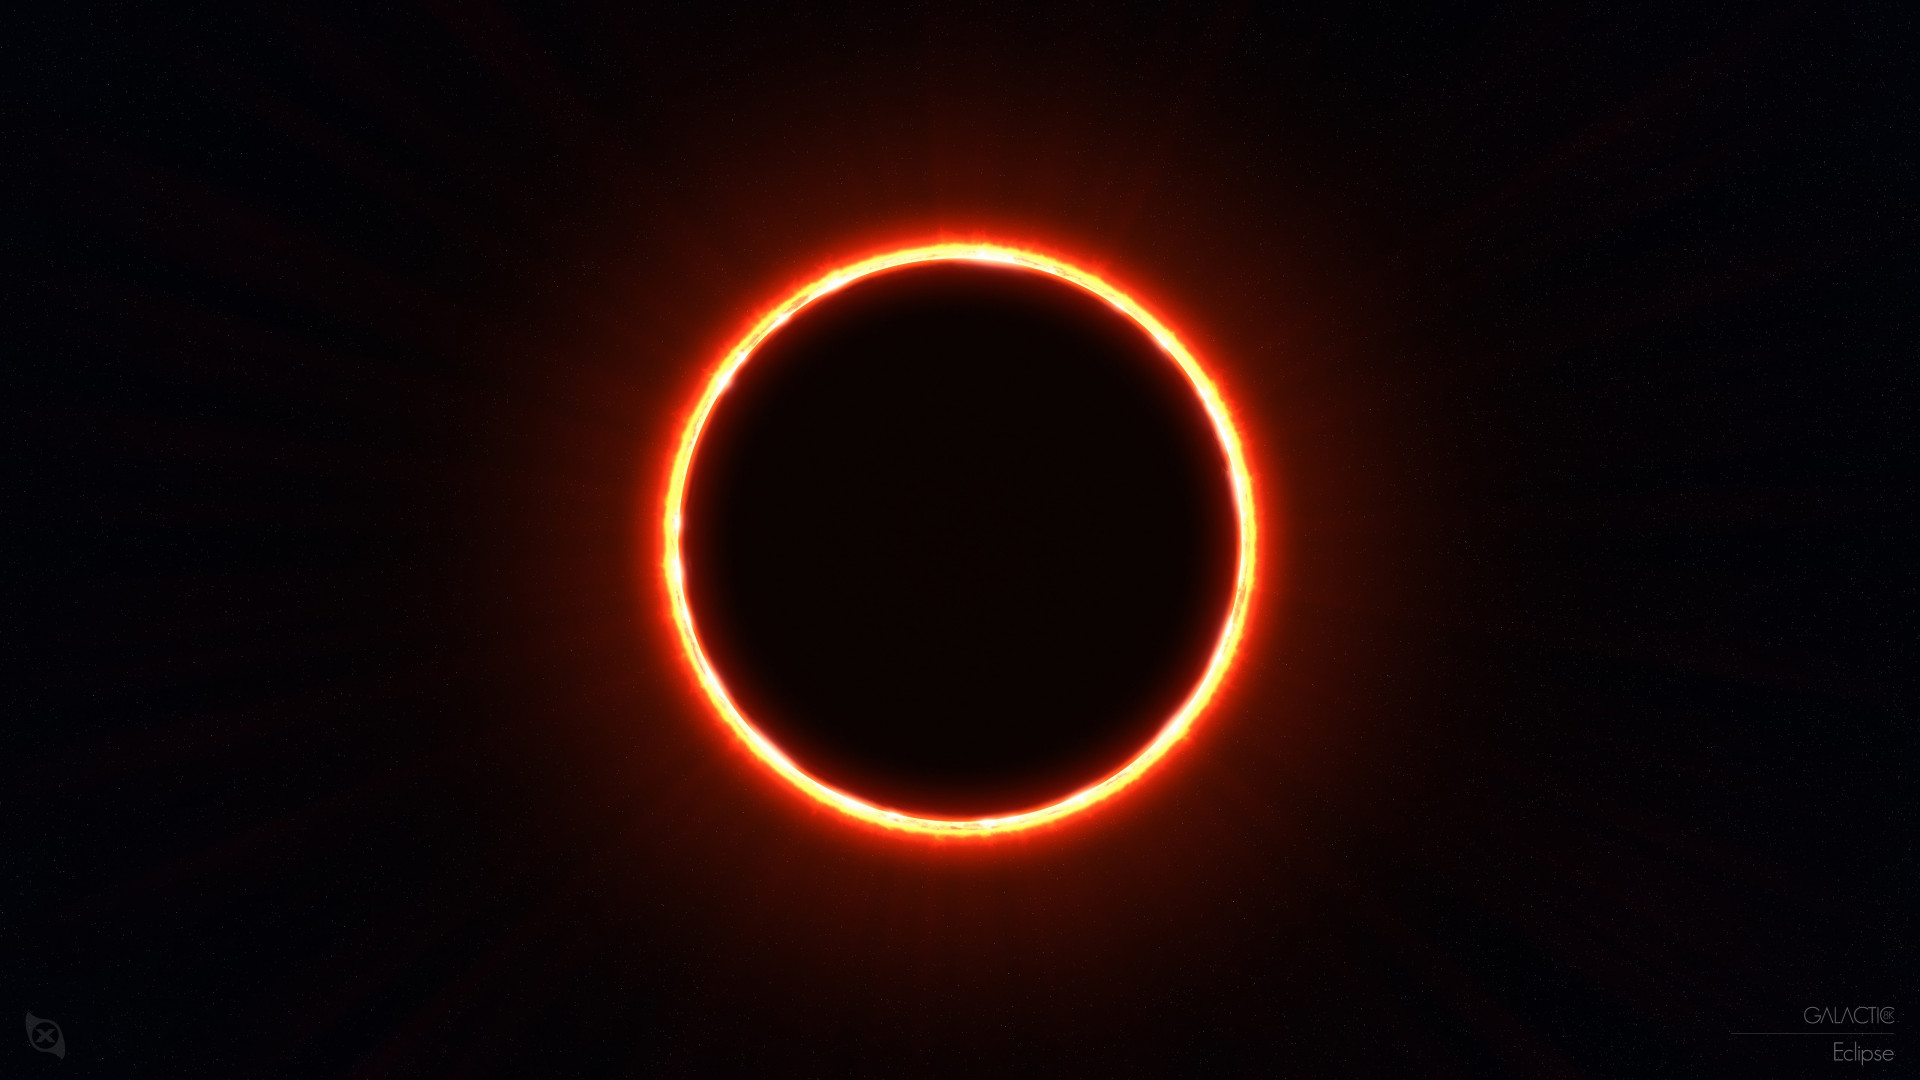 Eclipse wallpaper 1920x1080